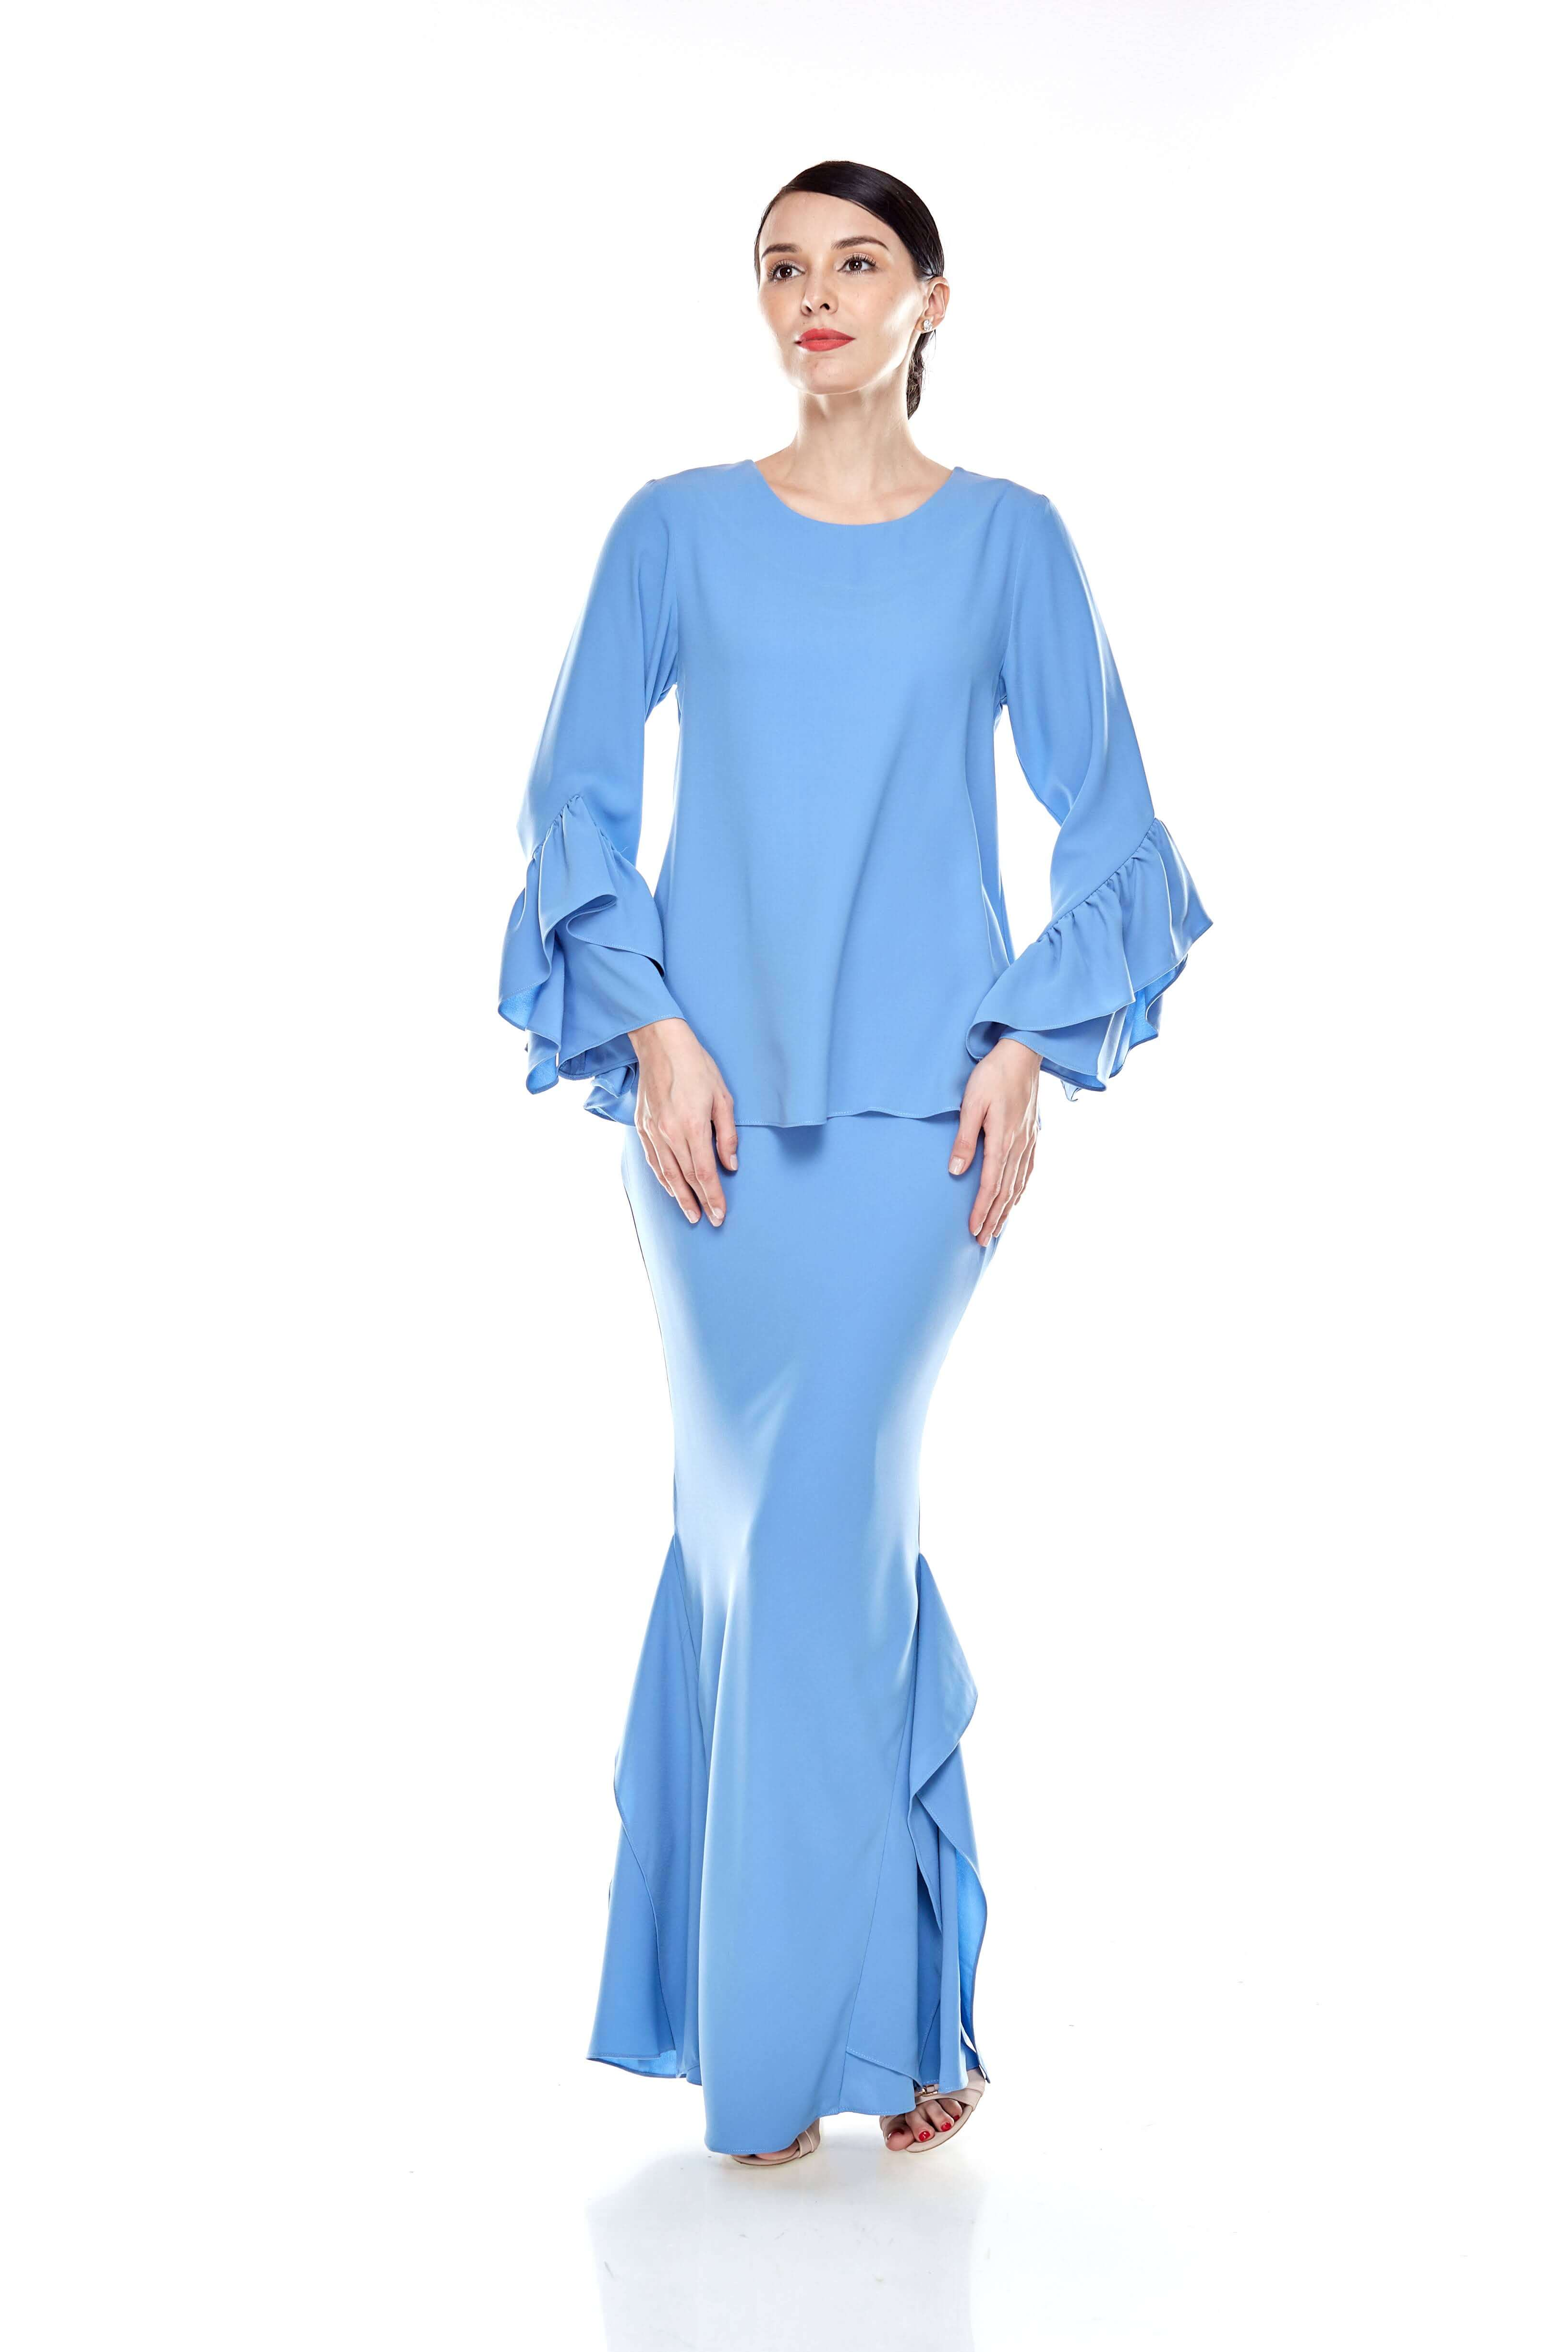 Baby Blue Round Neck Top With Ruffle Sleeve (6)